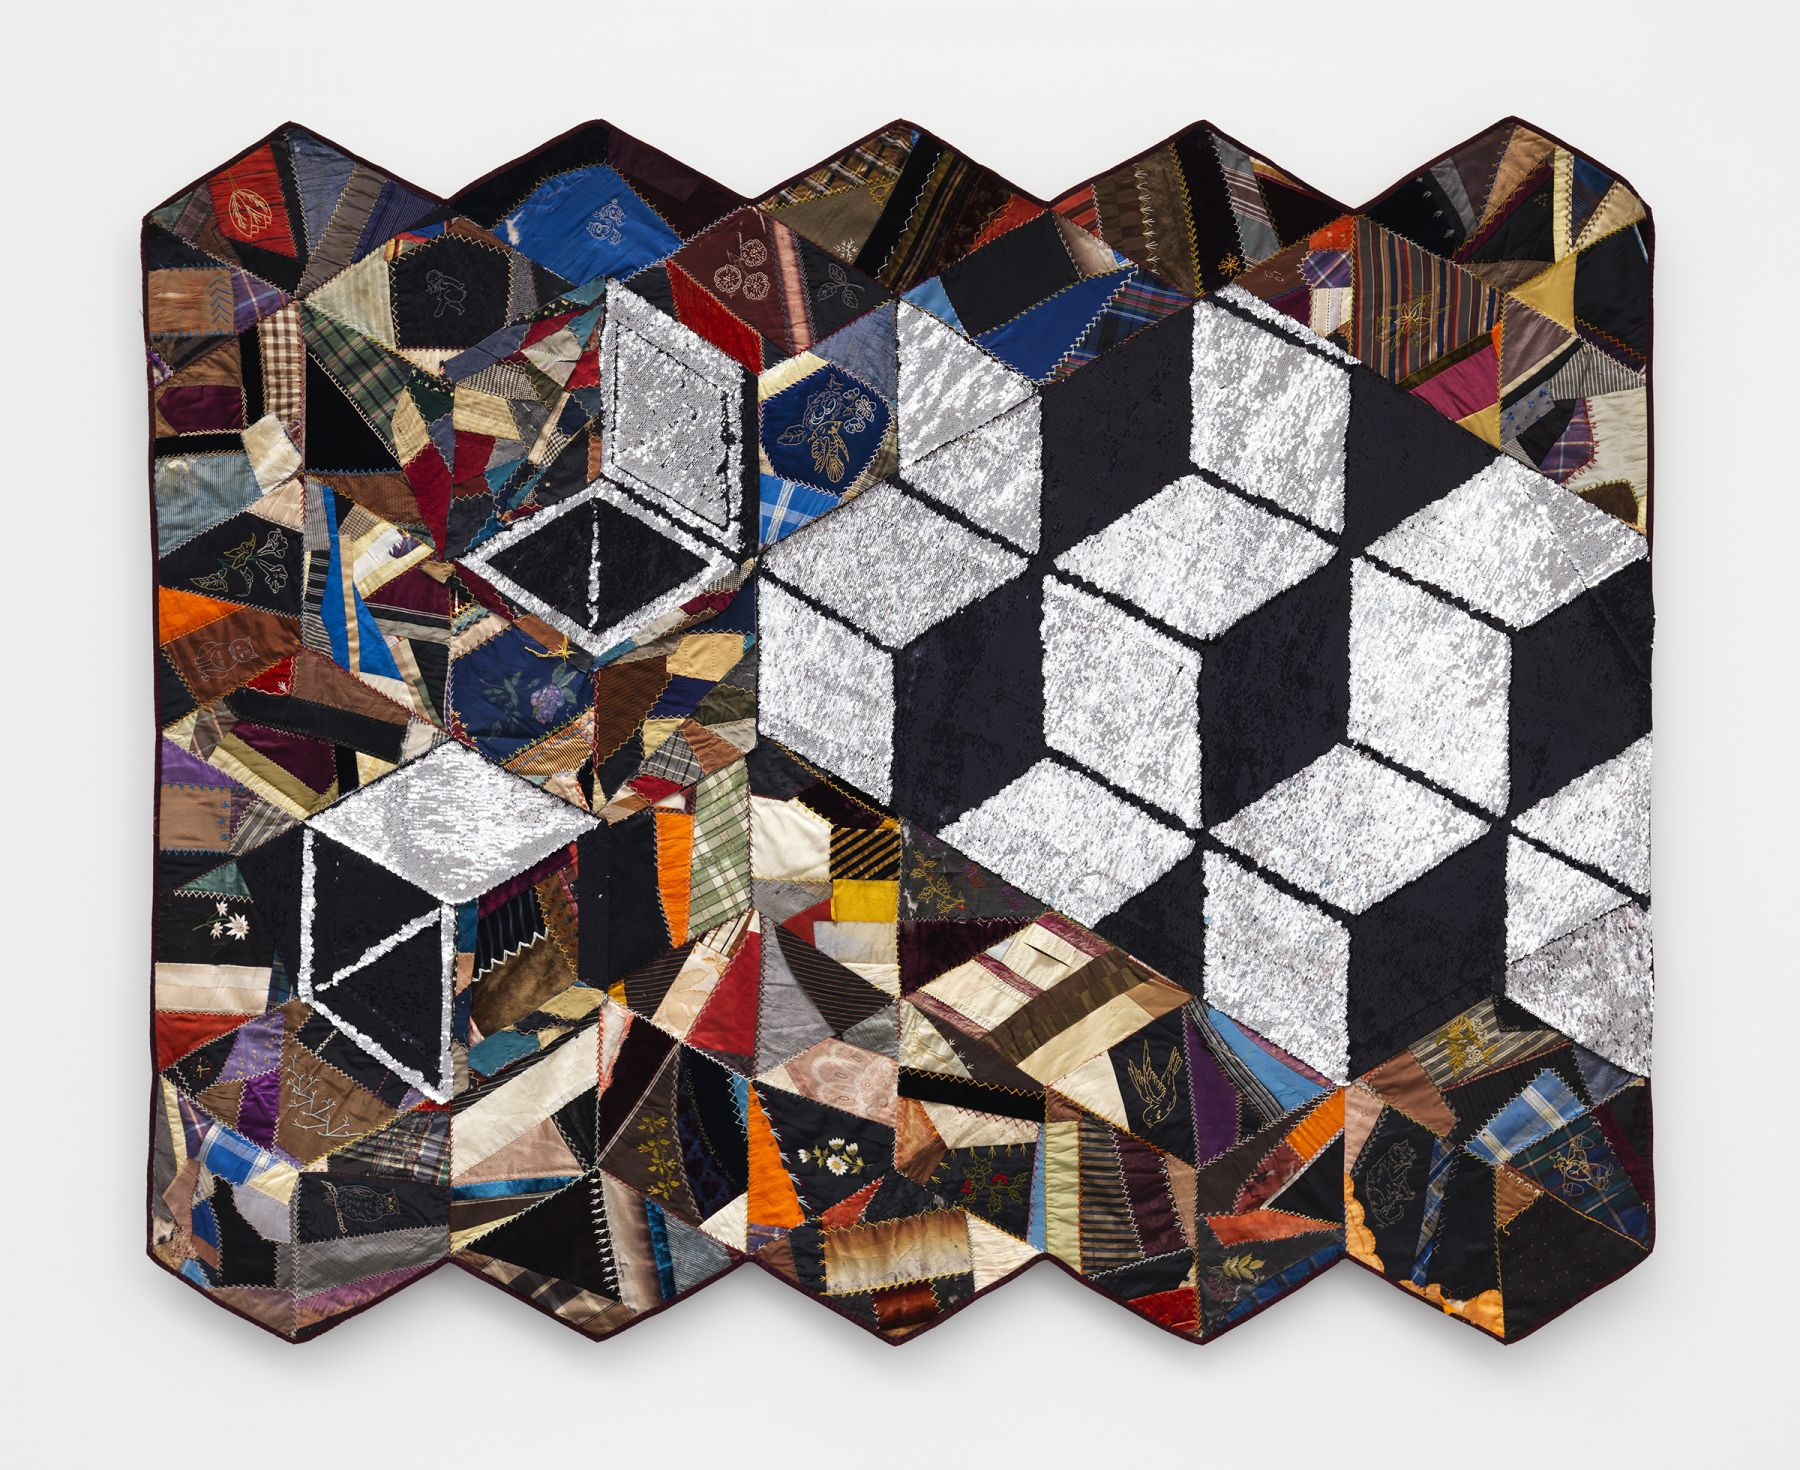 contemporary fiber artwork by Sanford Biggers for sale in a gallery exhibition